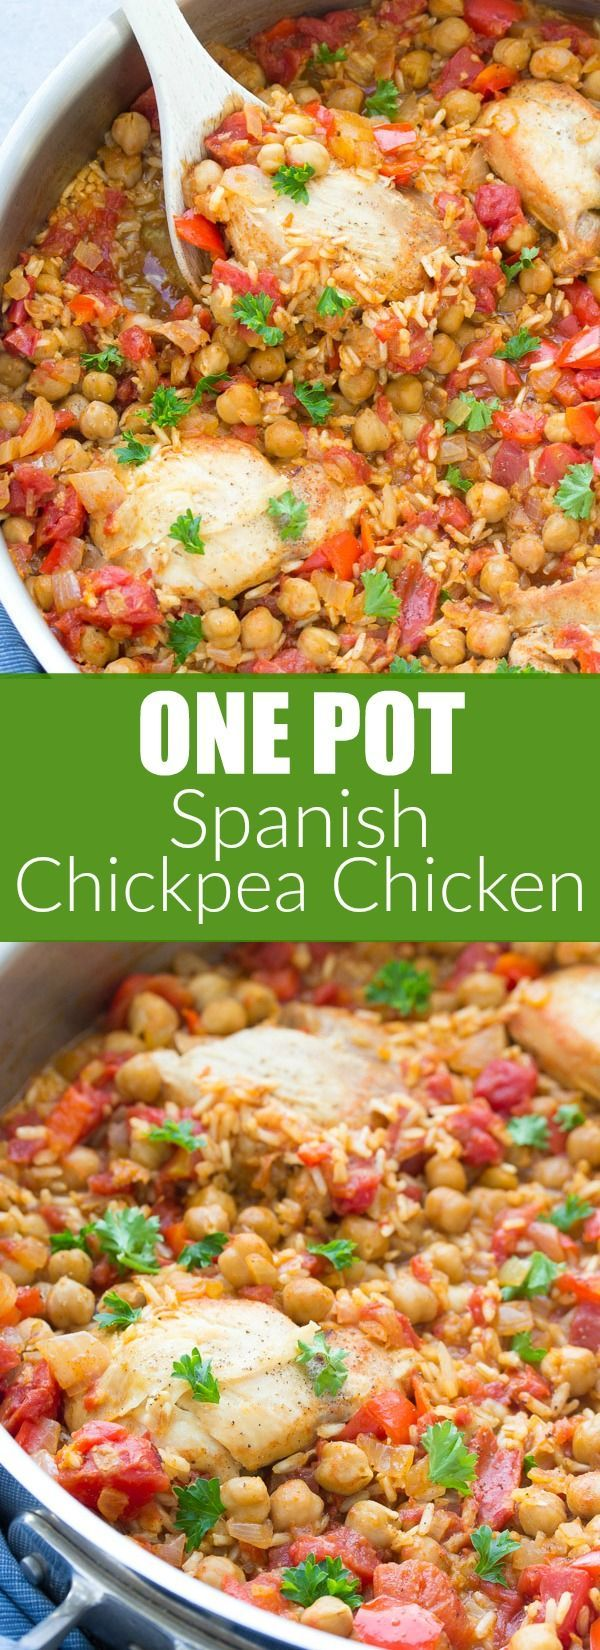 This One Pot Spanish Chickpea Chicken is an easy dinner recipe that the whole family will love! With brown rice, tomatoes, and vegetables, all cooked in one pan! #pulsepledge #sponsored | http://www.kristineskitchenblog.com